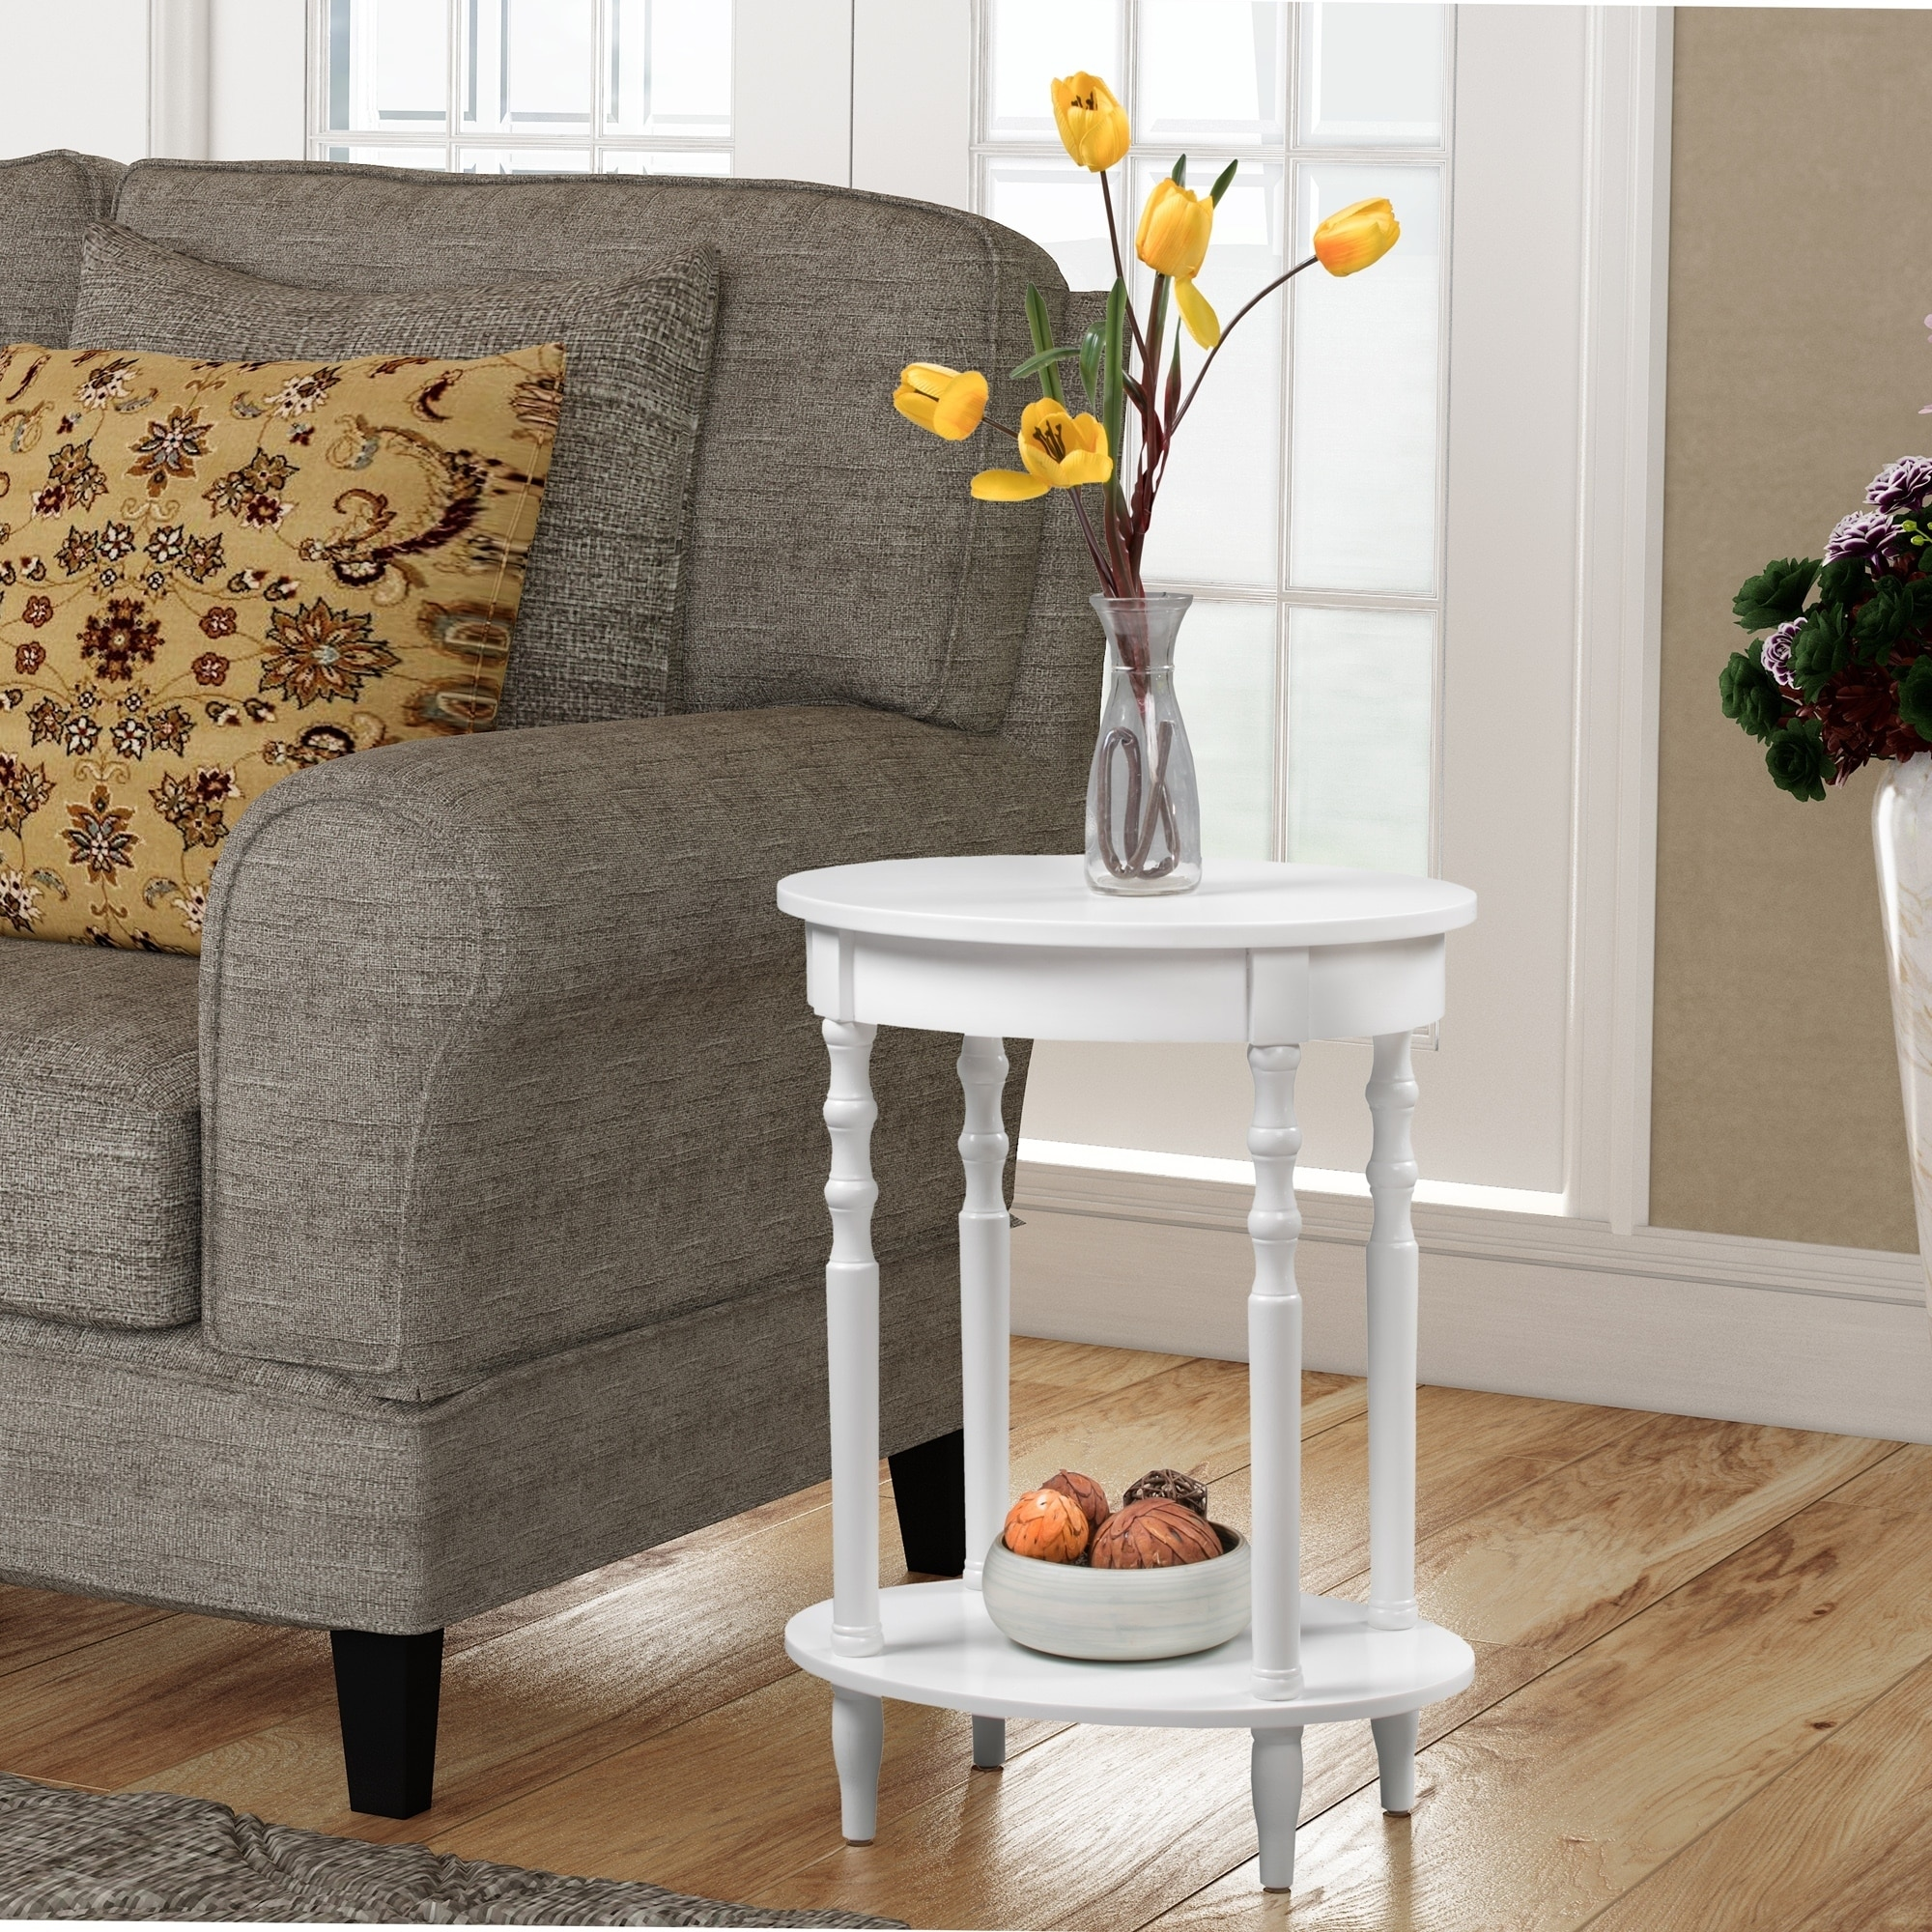 Convenience Concepts Classic Accents Brandi Oval End Table, Multiple Finishes by Convenience Concepts Inc